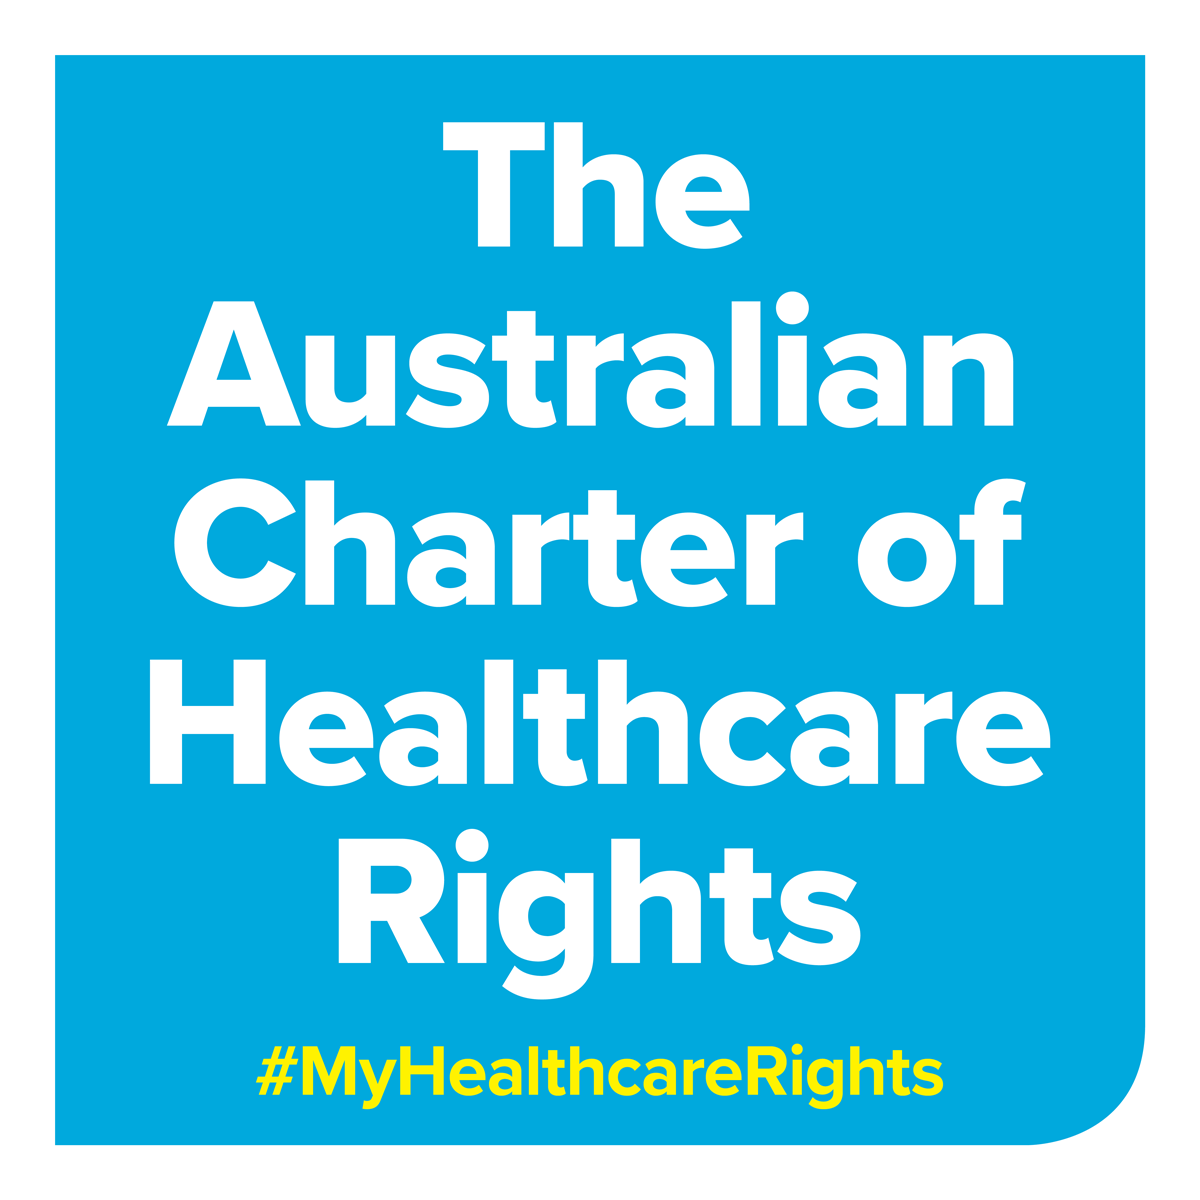 "White text on a blue background.  The image reads ""The Australian Charter of Healthcare Rights #myhealthcarerights"""